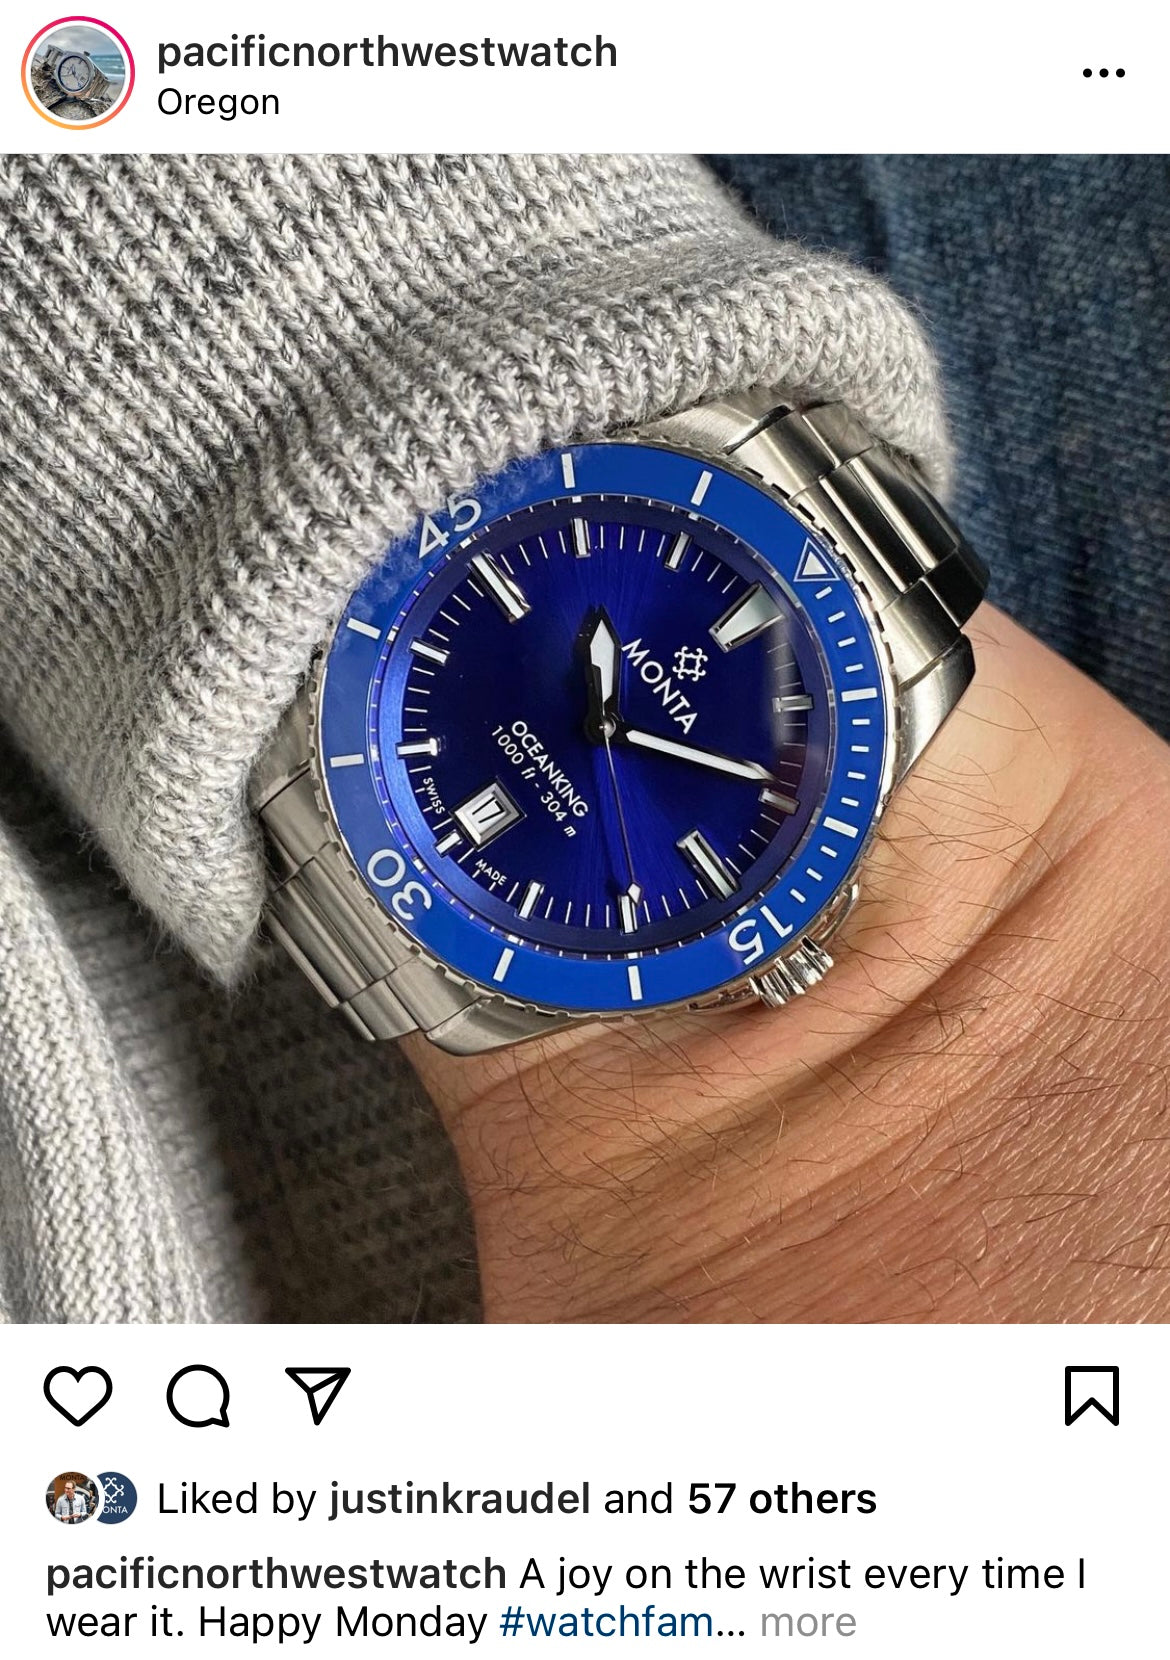 monta watch owners instagram account